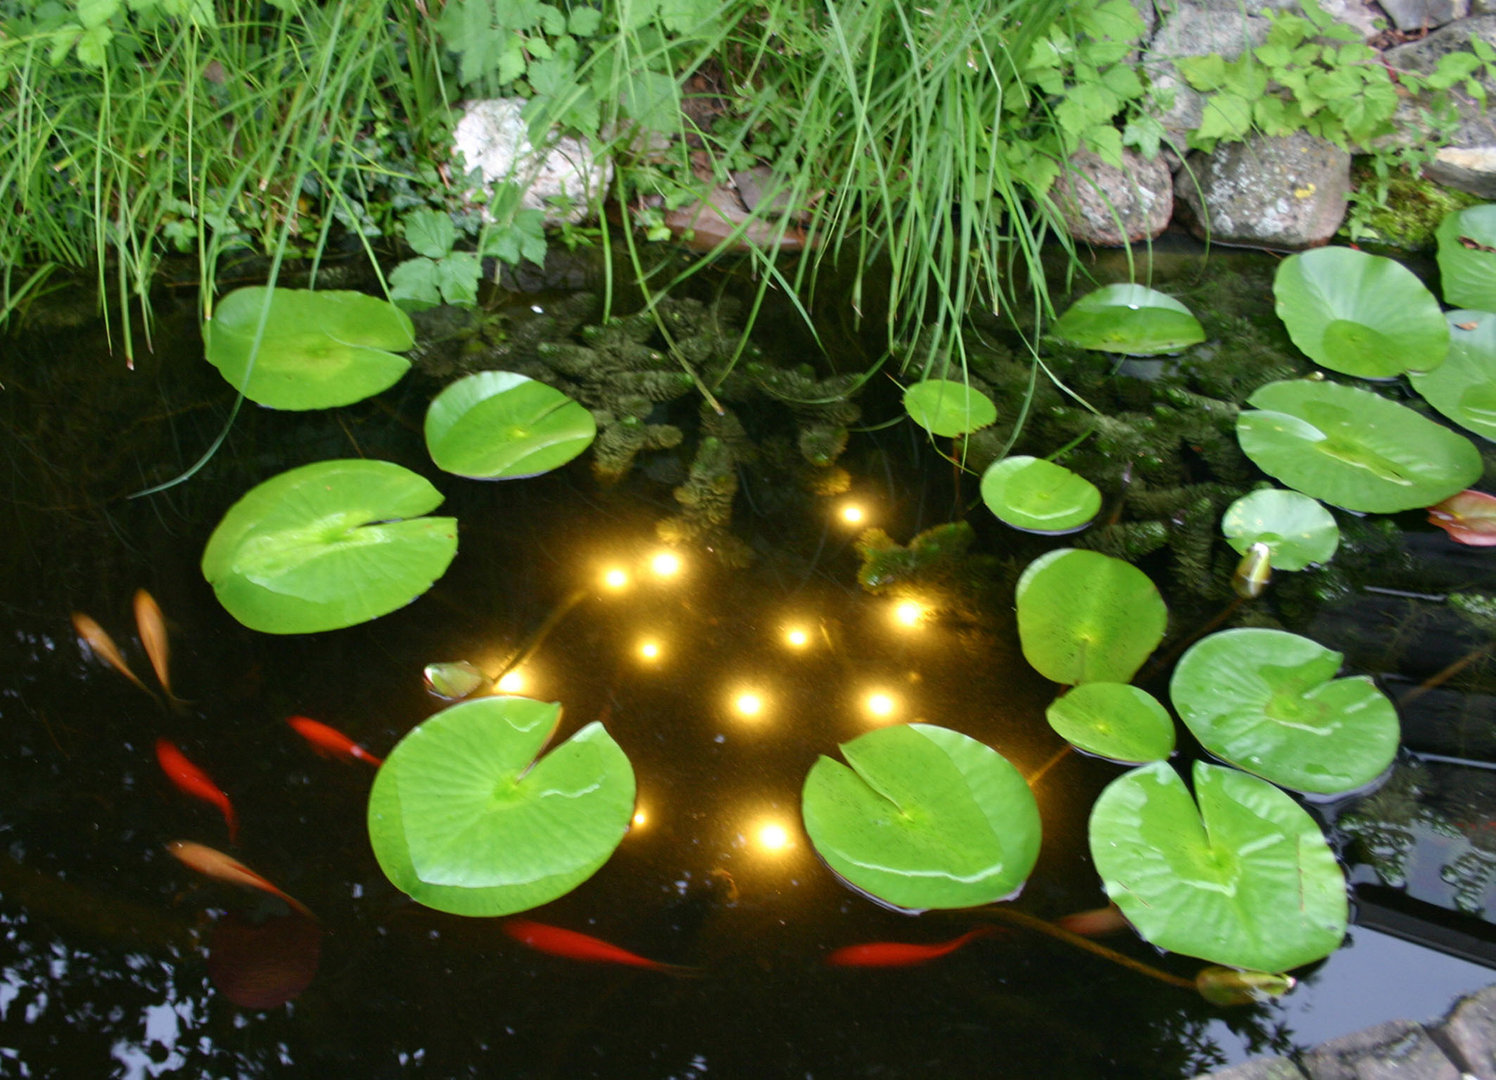 Eclairage Pour Bassin Eclairage 13 Led Immergé Welding Pond Light Velda